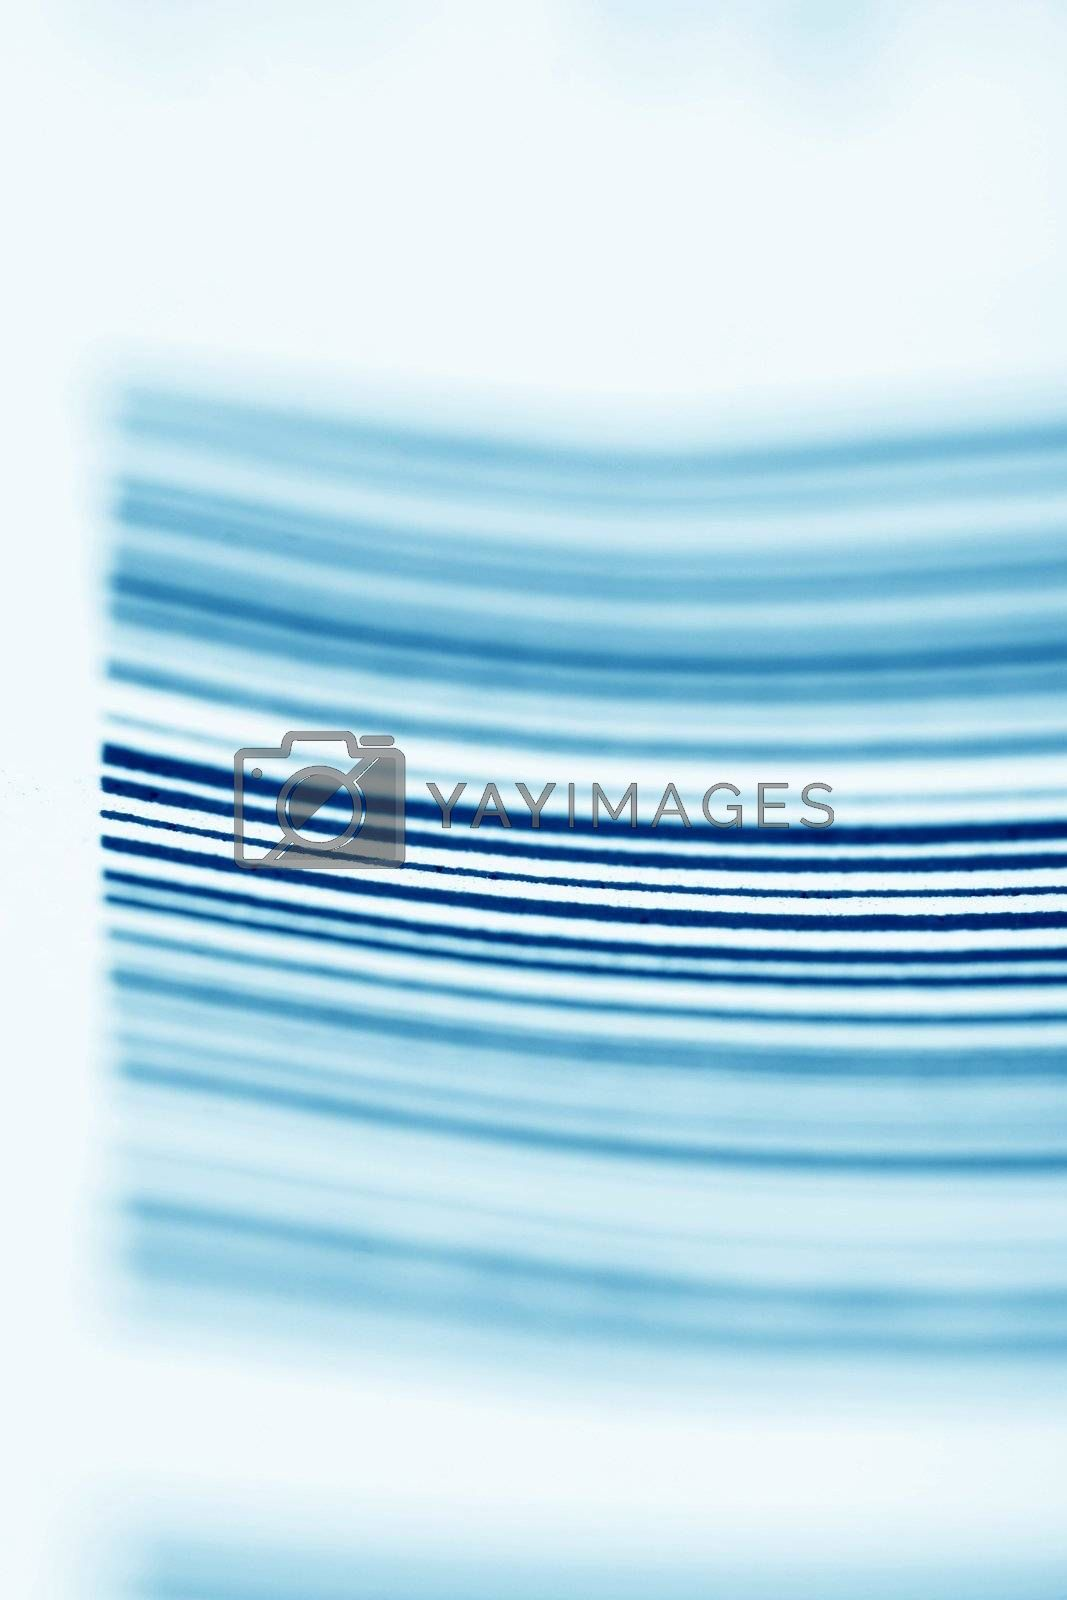 barcodeblack lines on white background